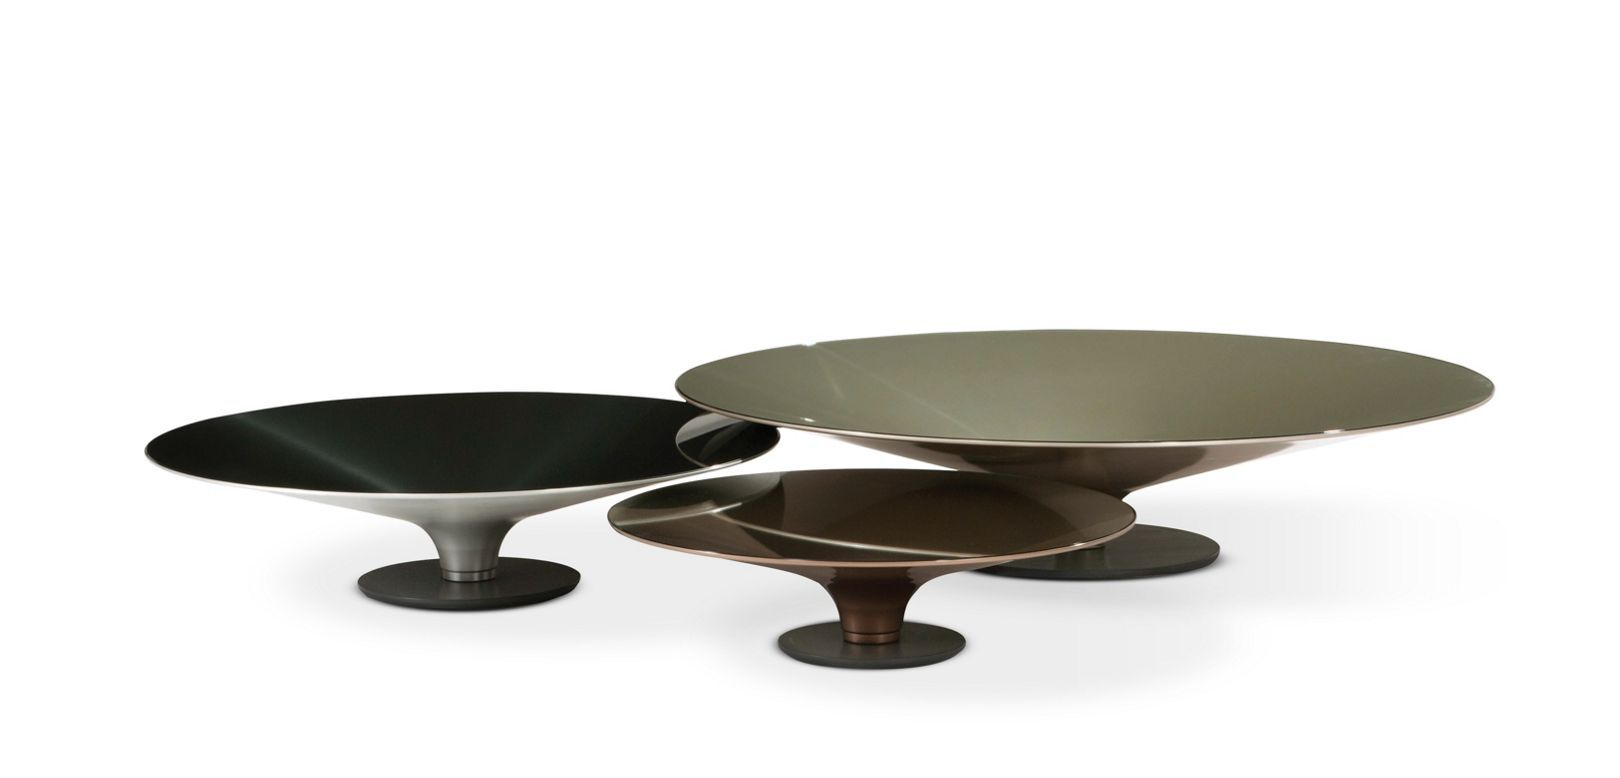 Ovni Cocktail Table Roche Bobois Cocktail Tables Coffee Table Round Coffee Table